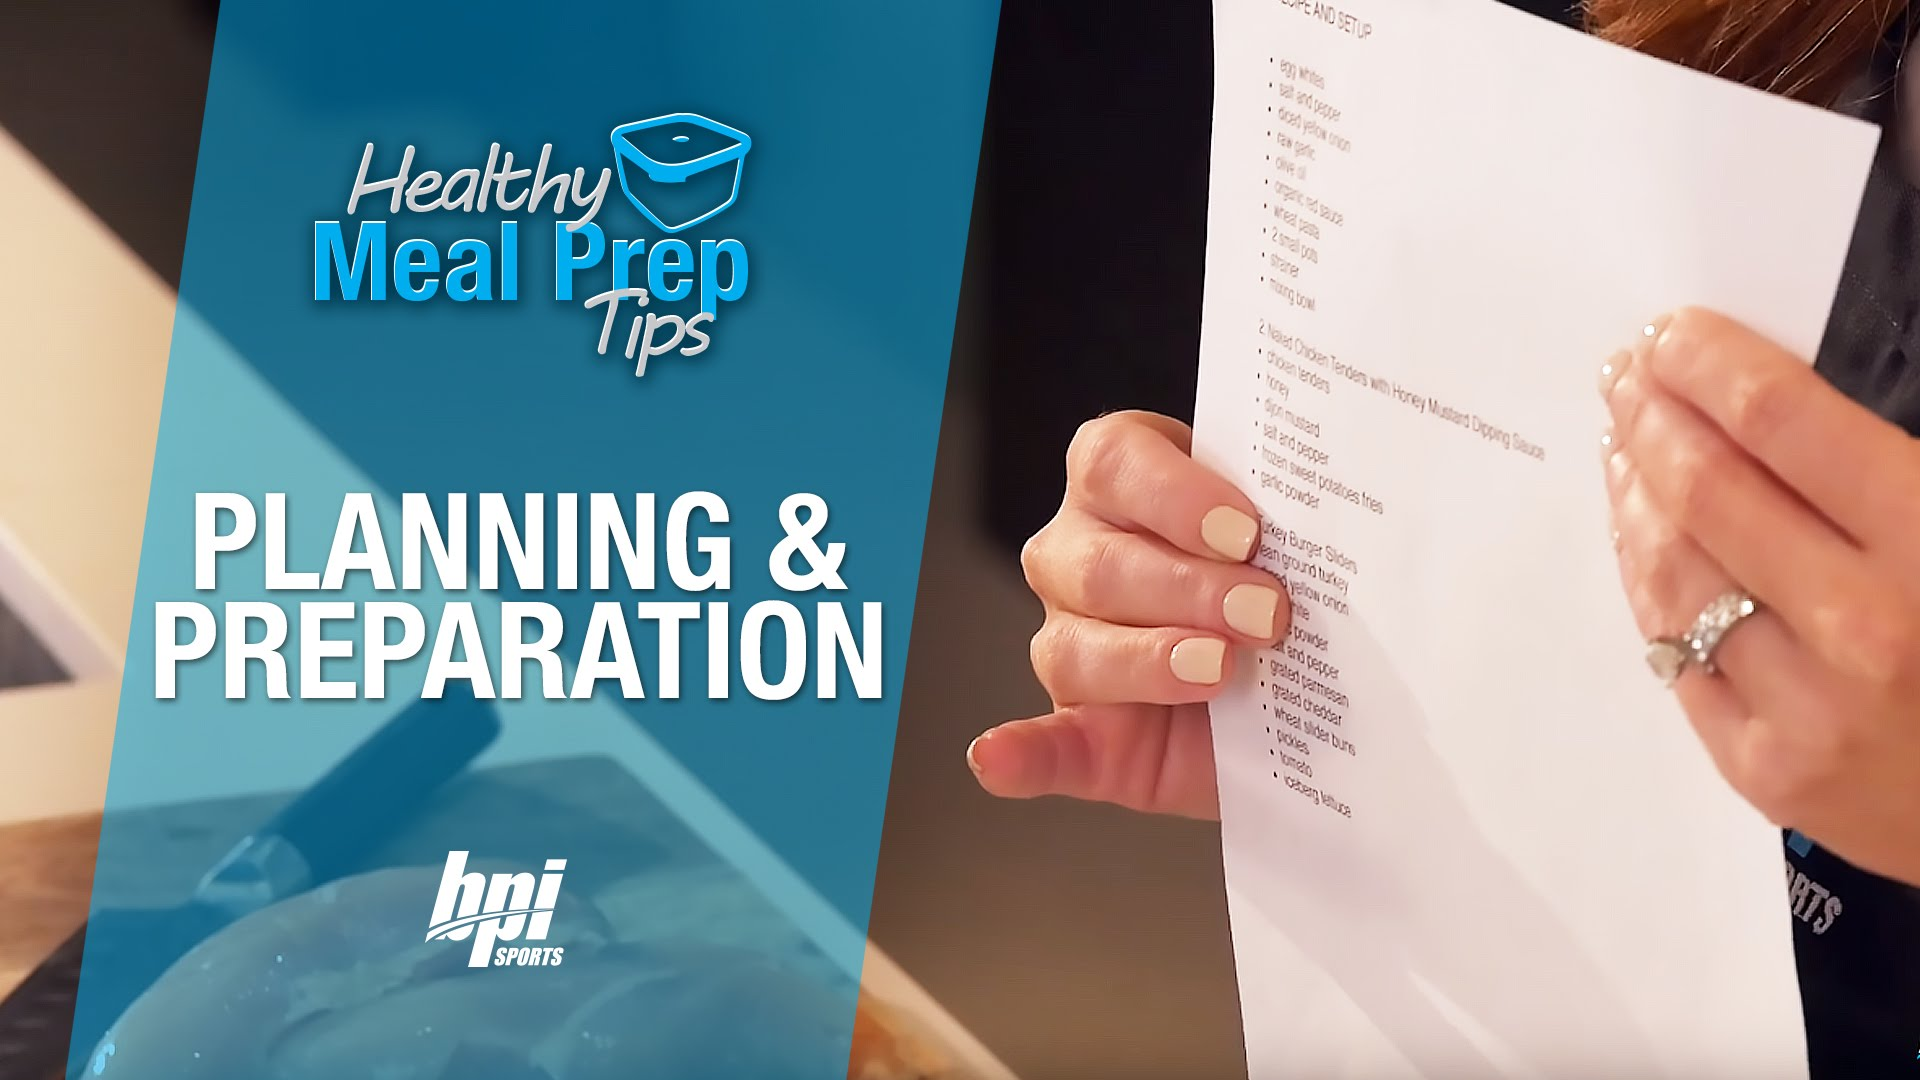 Healthy-Meal-Prep-Tips-Planning-and-Preparation-BPI-Sports